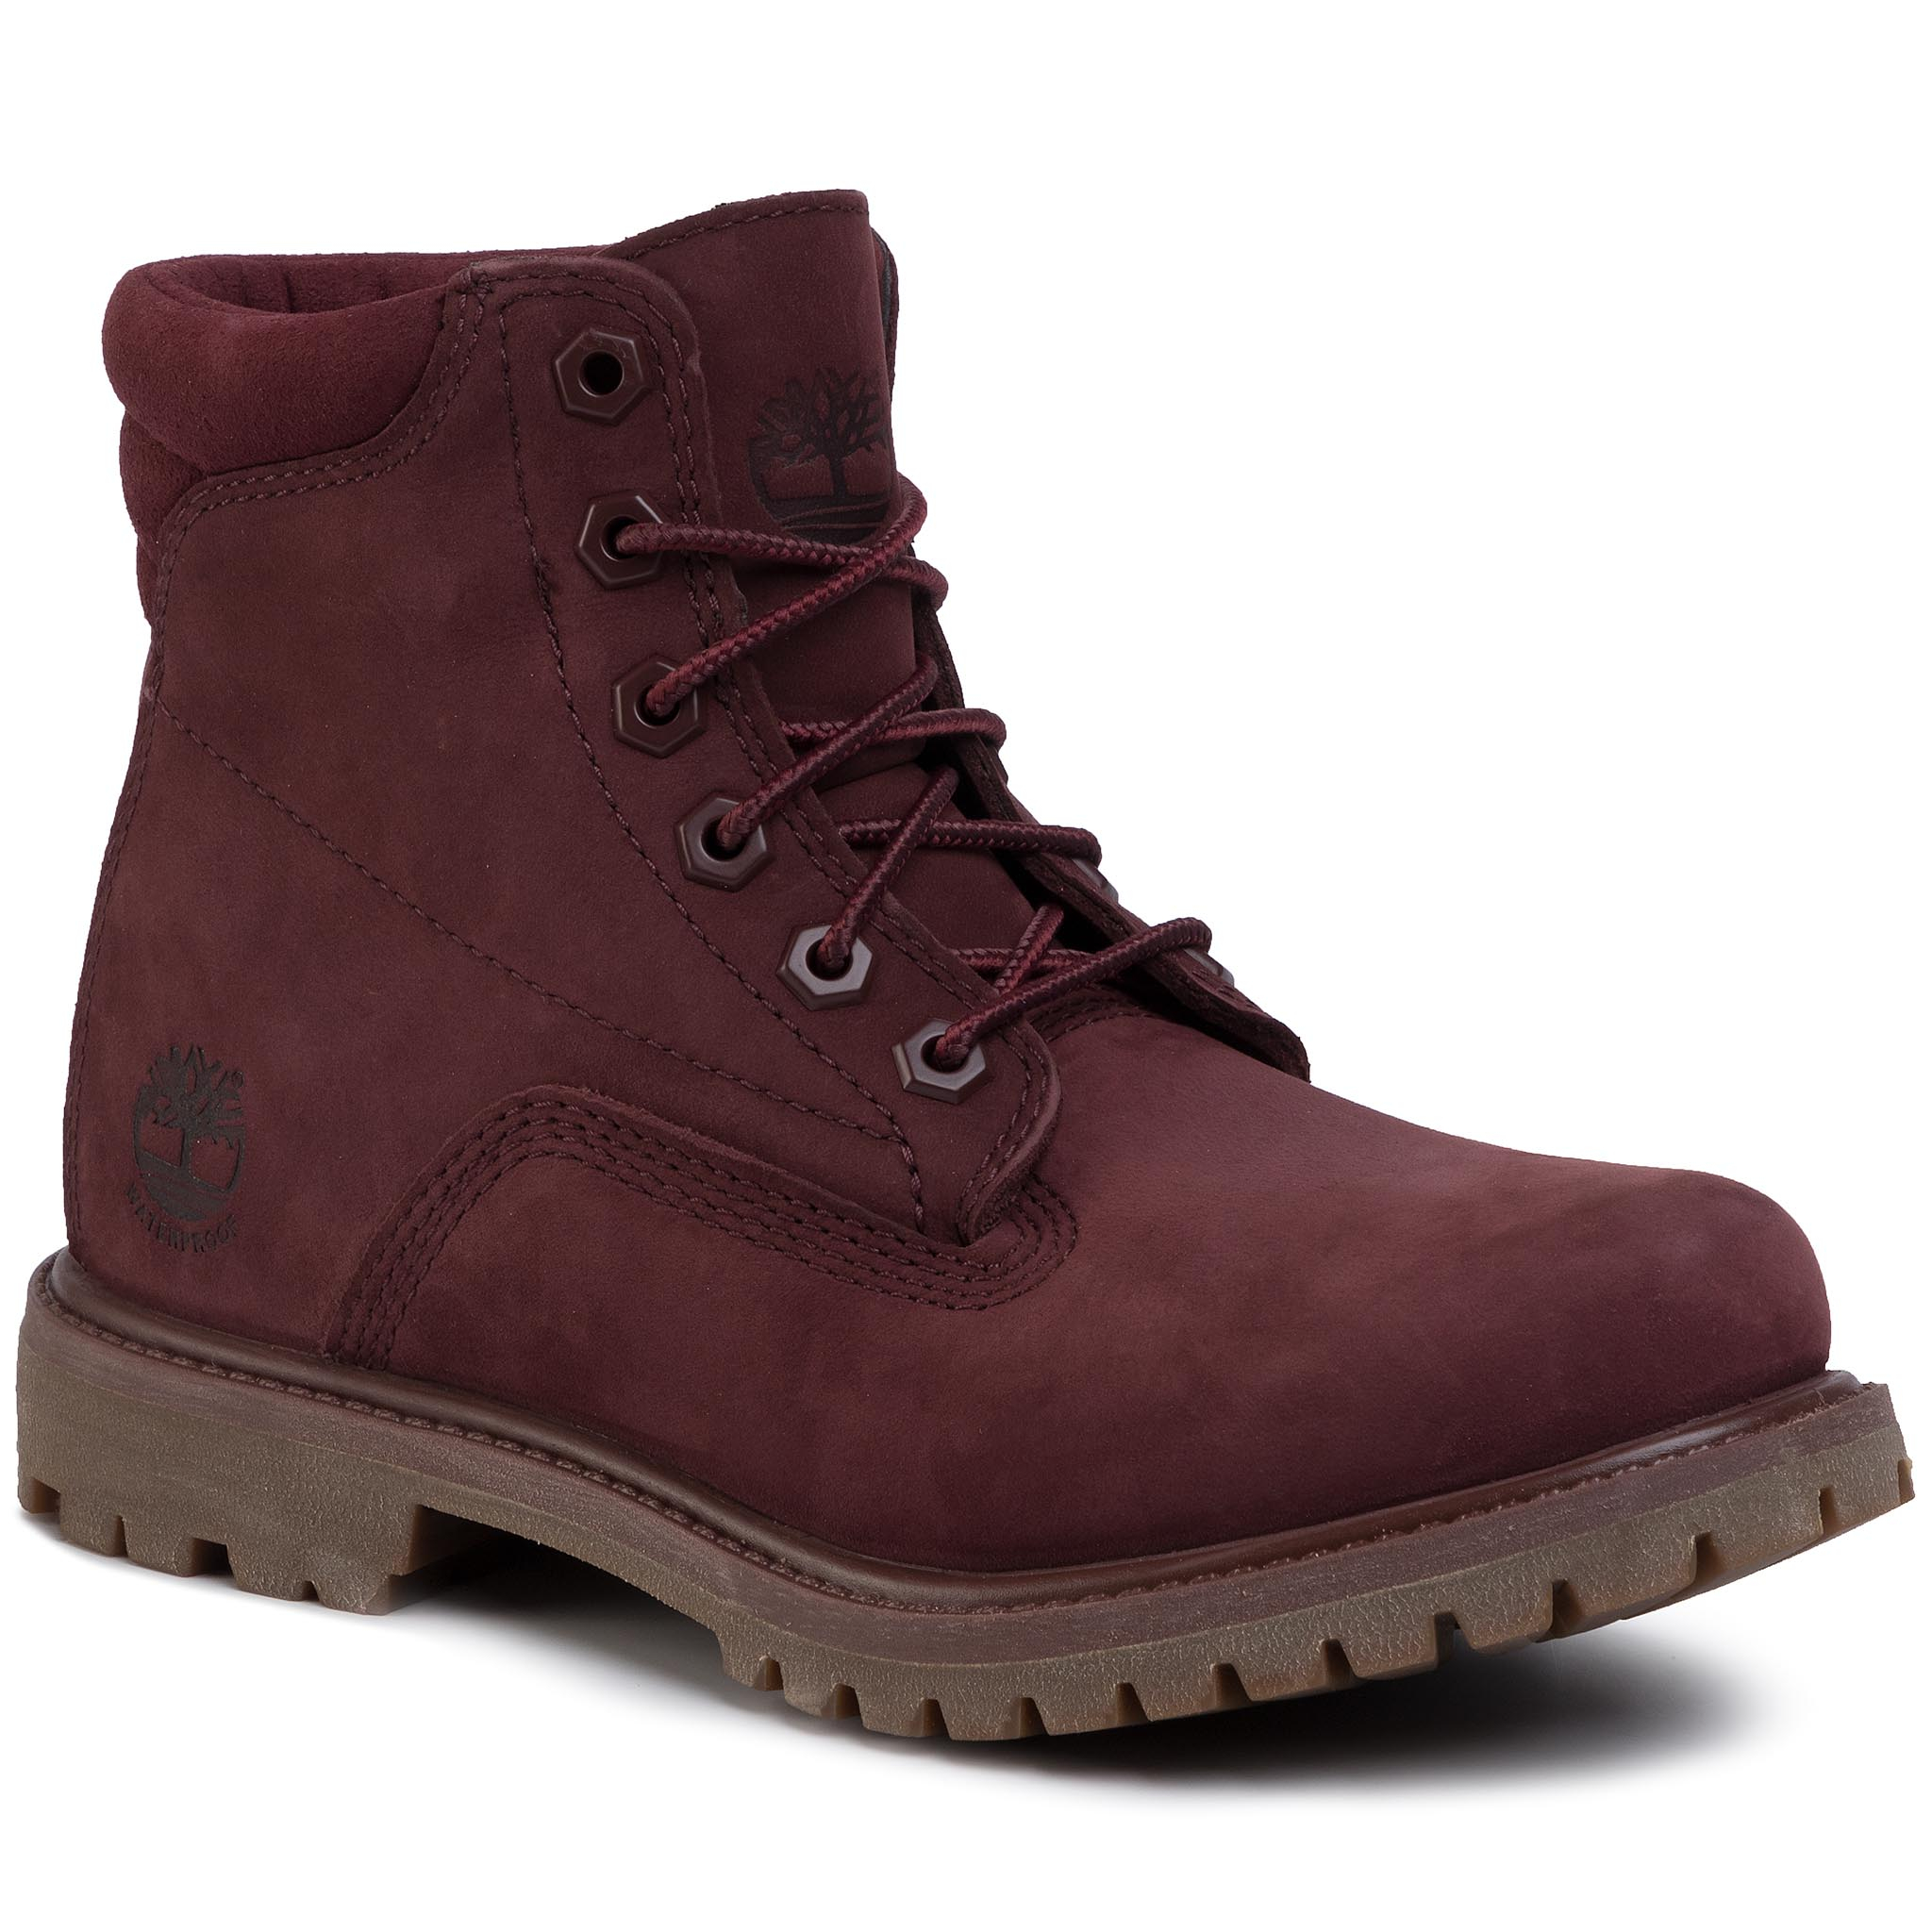 Trappers TIMBERLAND - Waterville 6 In Waterproof Boot TB0A1R2TC601 Burgundy Nubuck